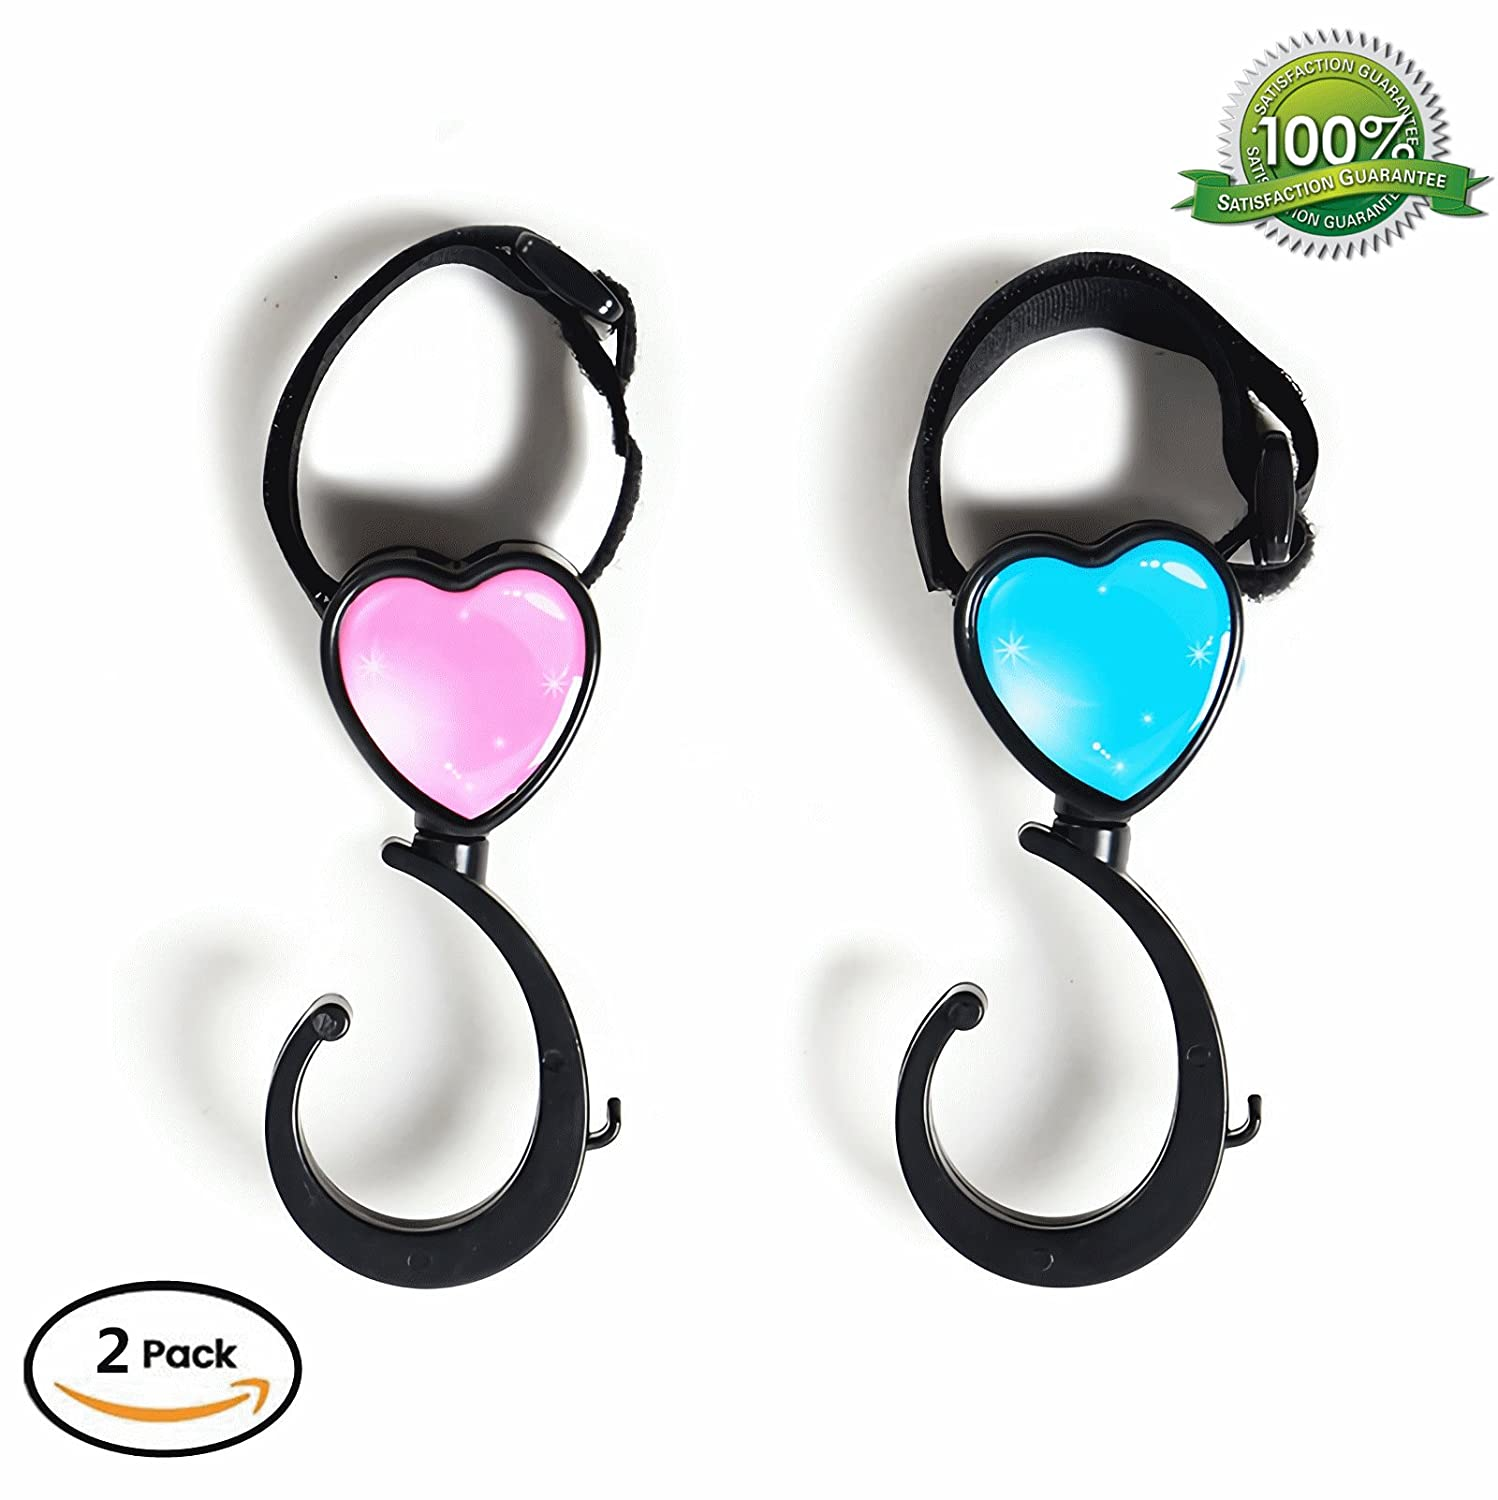 Stroller Hooks - Multi Purpose Stroller Clips - Handy Baby Stroller Accessories Hook Hanger for Hanging Bags, Diaper Bags, Groceries, Purse and more HDWISS